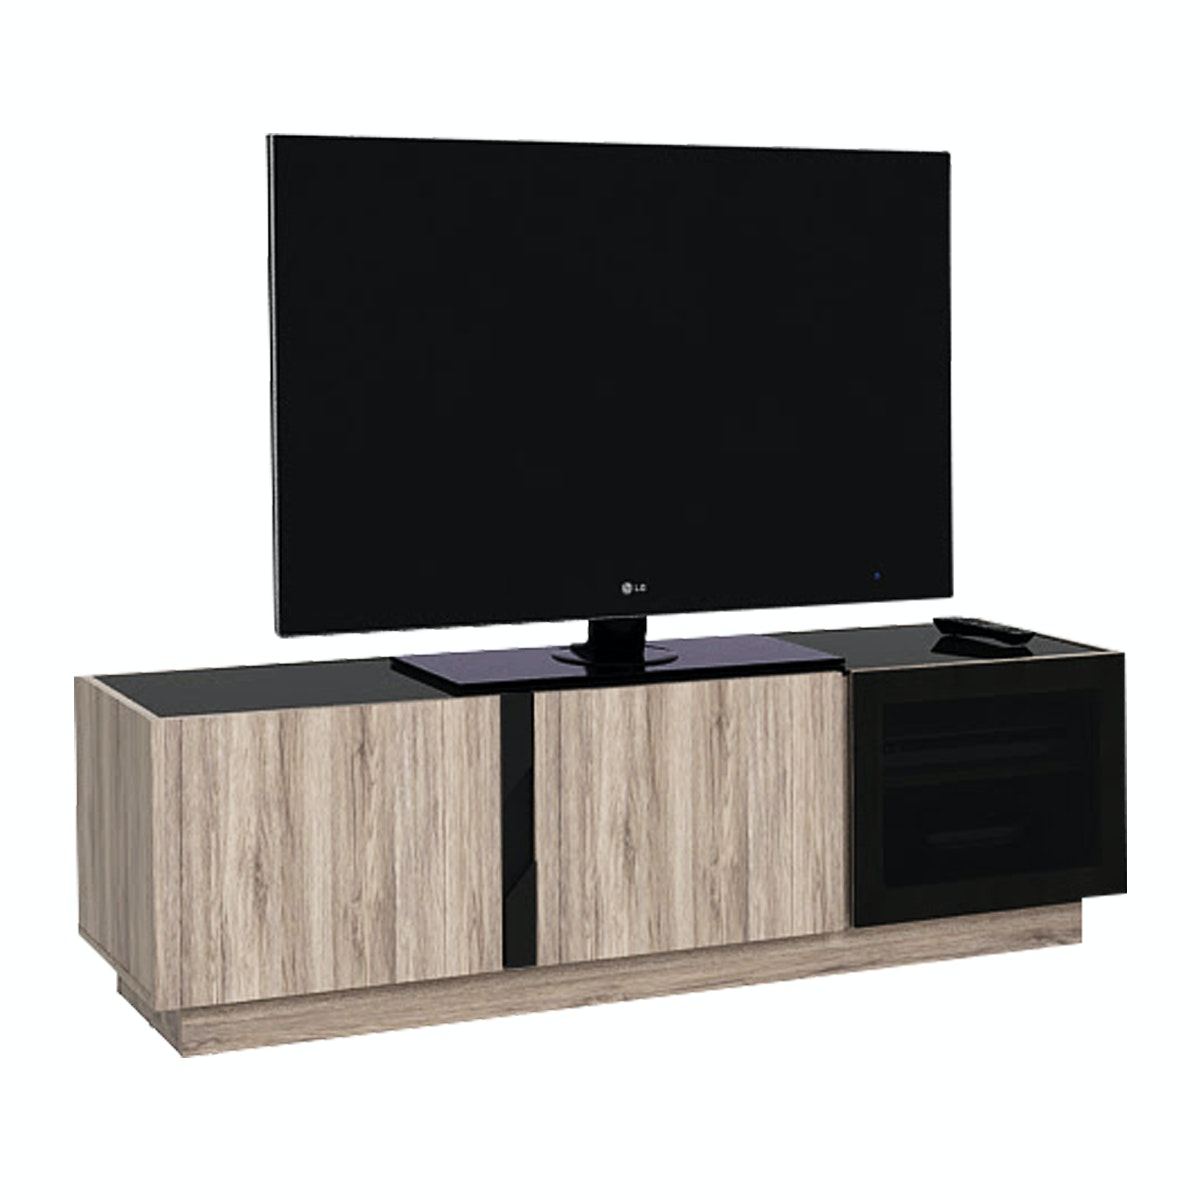 Pro Design Brico Rak TV - Sanremo Dark - Black